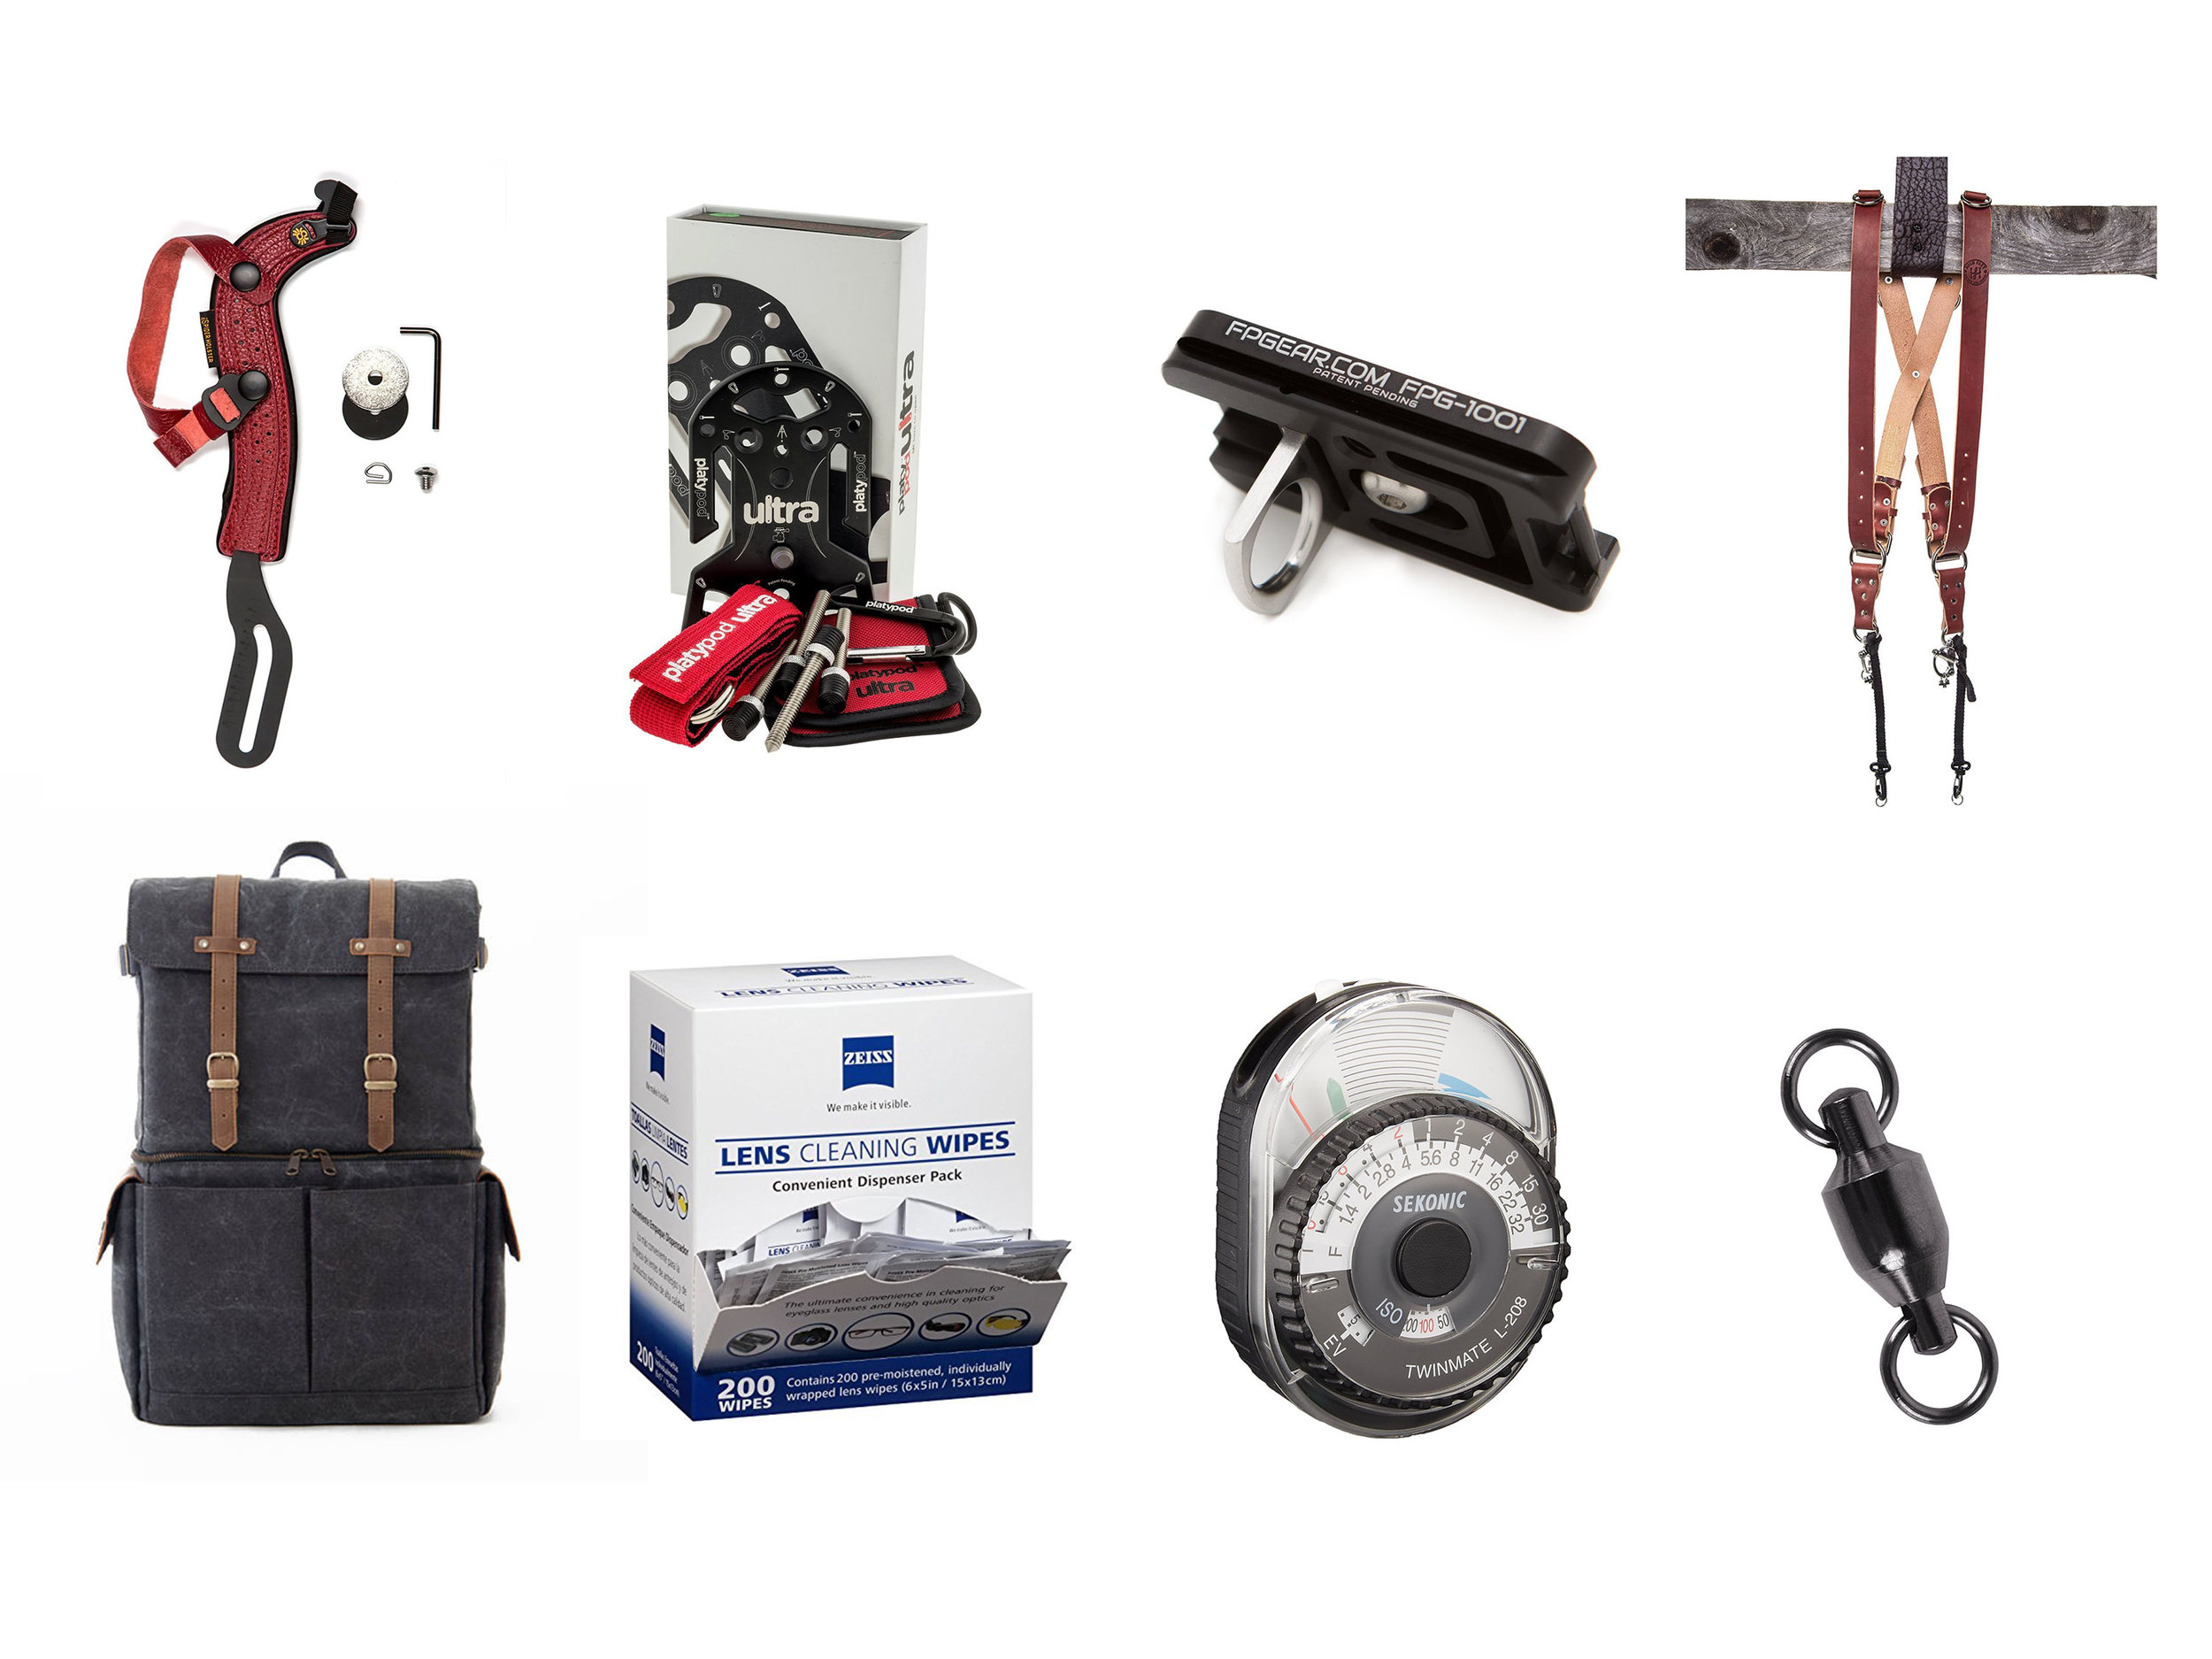 accessories-photographers-can't-live-without.jpg